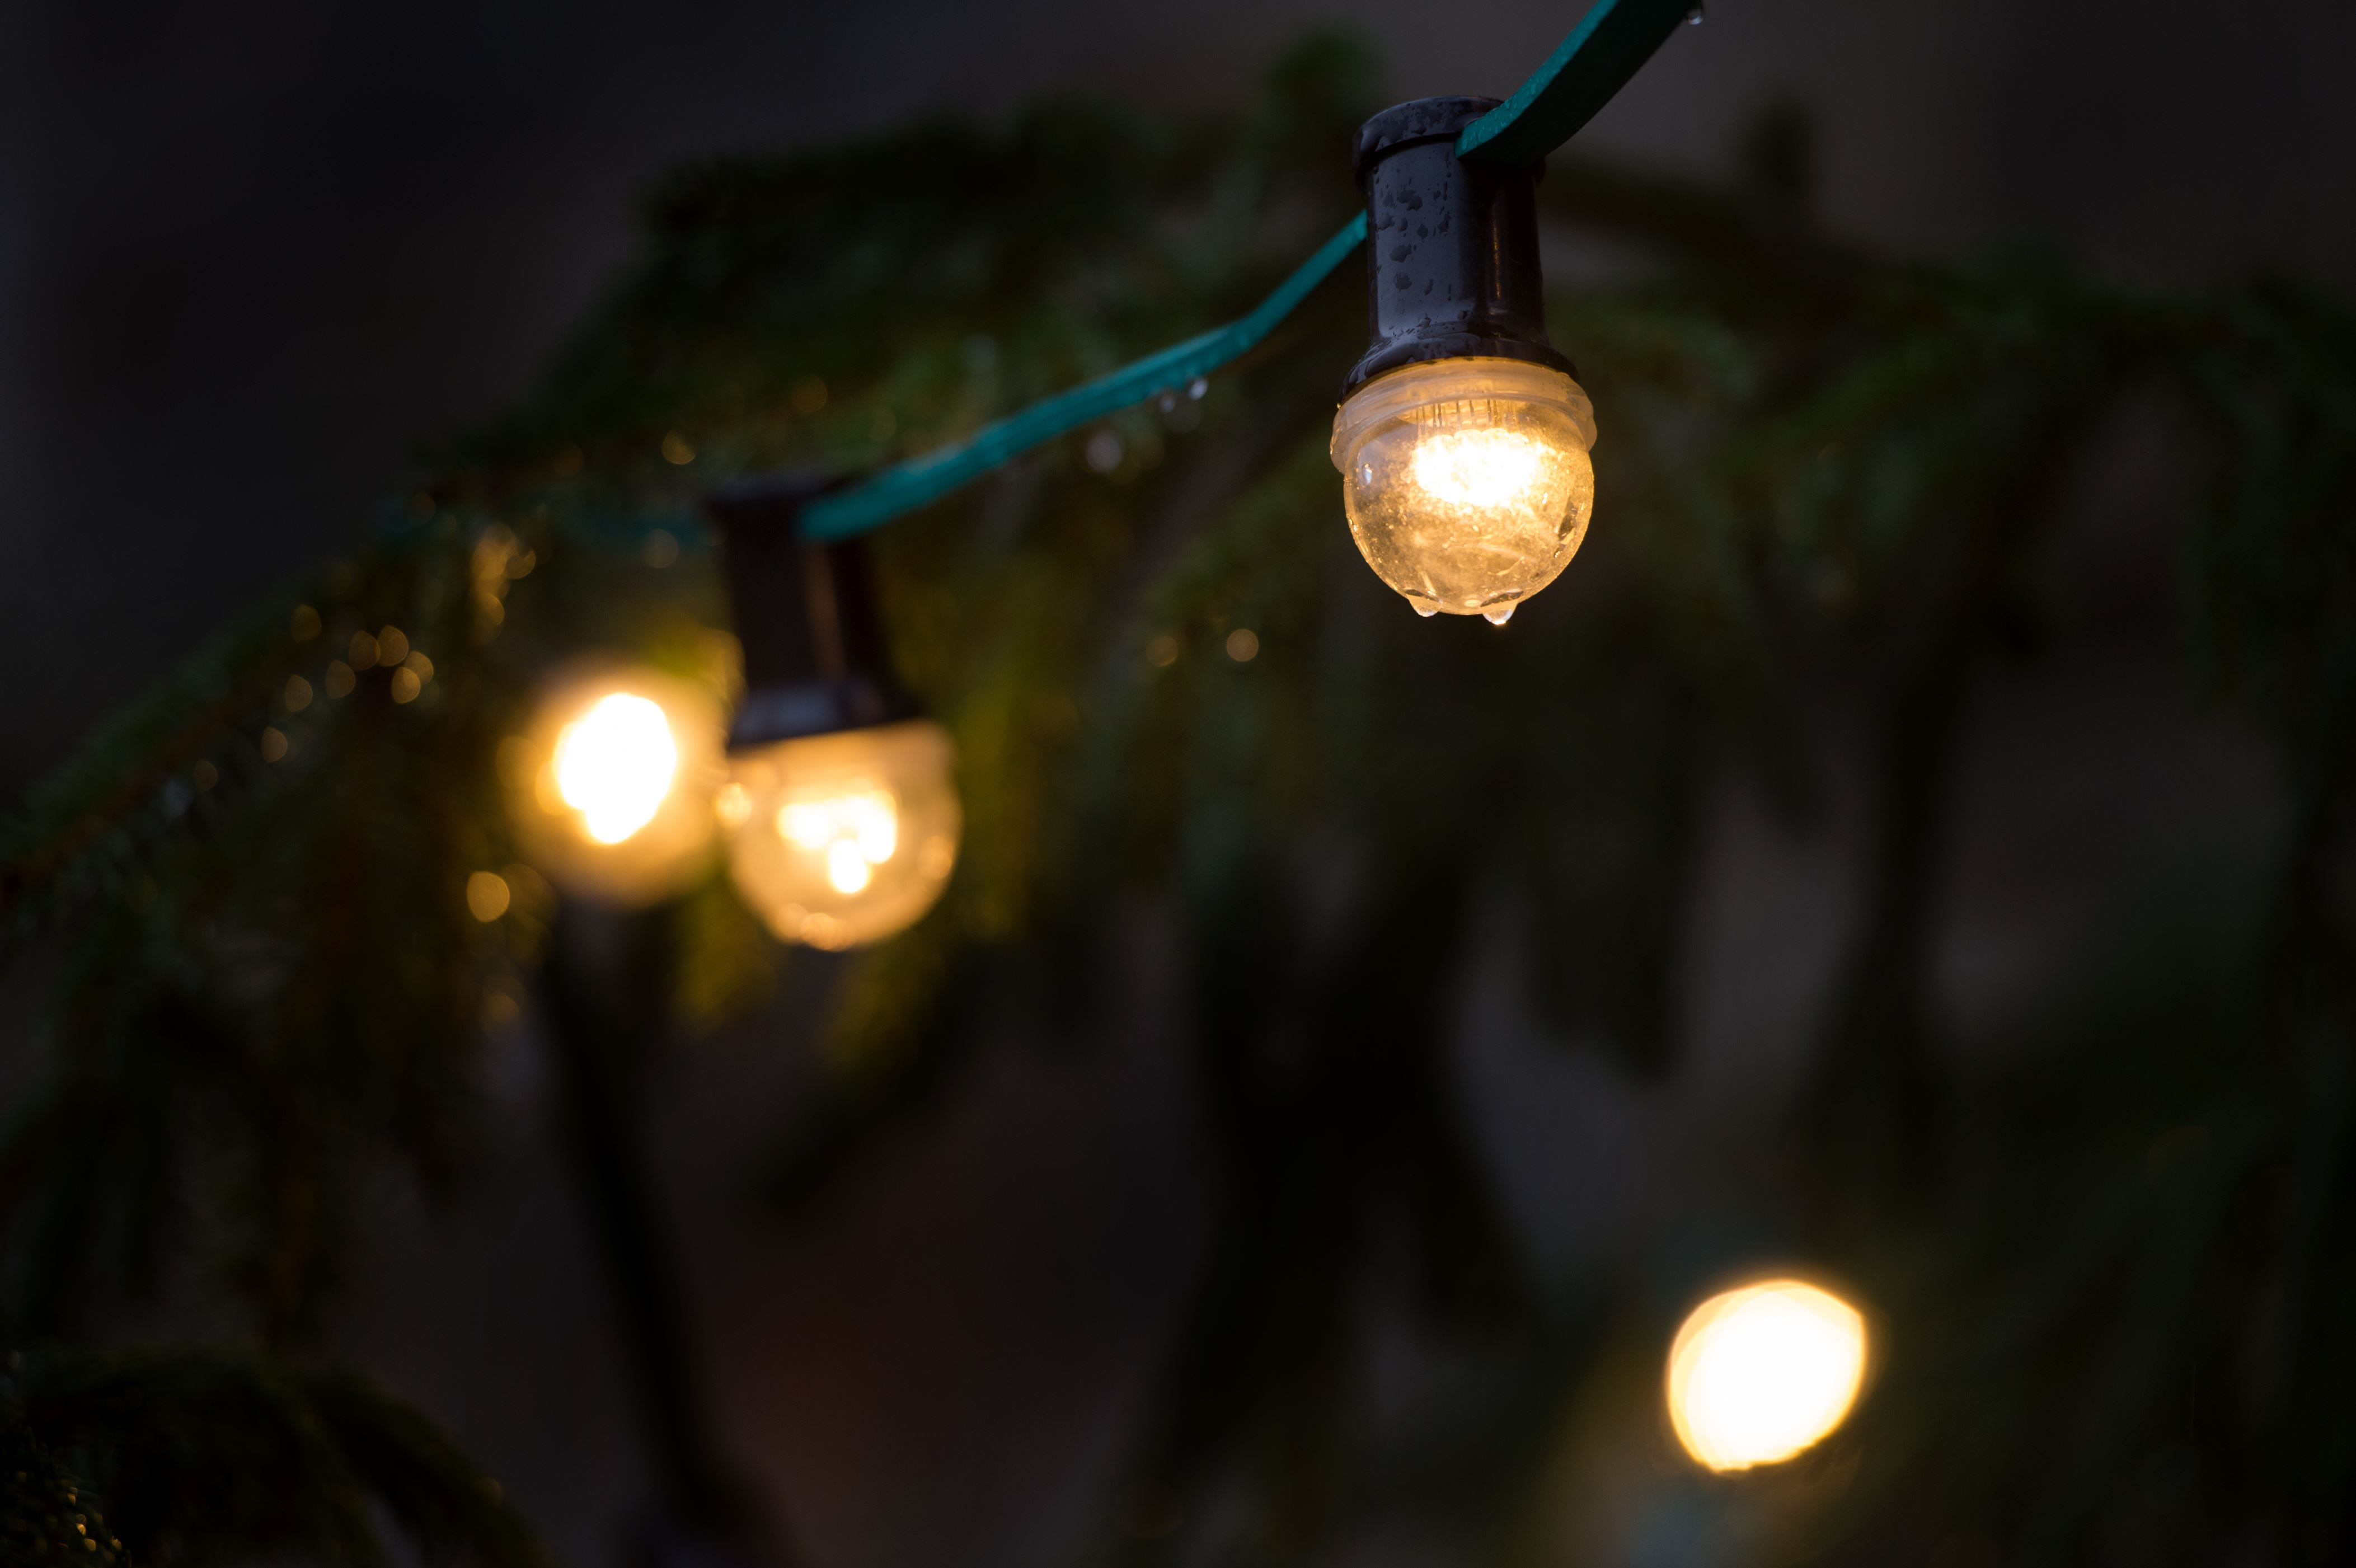 Rain drops hanging from a fairy lights ten days before Christmas Eve in the old town of Dresden, Germany, 14 December 2016. Photo: Arno Burgi/dpa-Zentralbild/dpa | usage worldwide   (Photo by Arno Burgi/picture alliance via Getty Images)